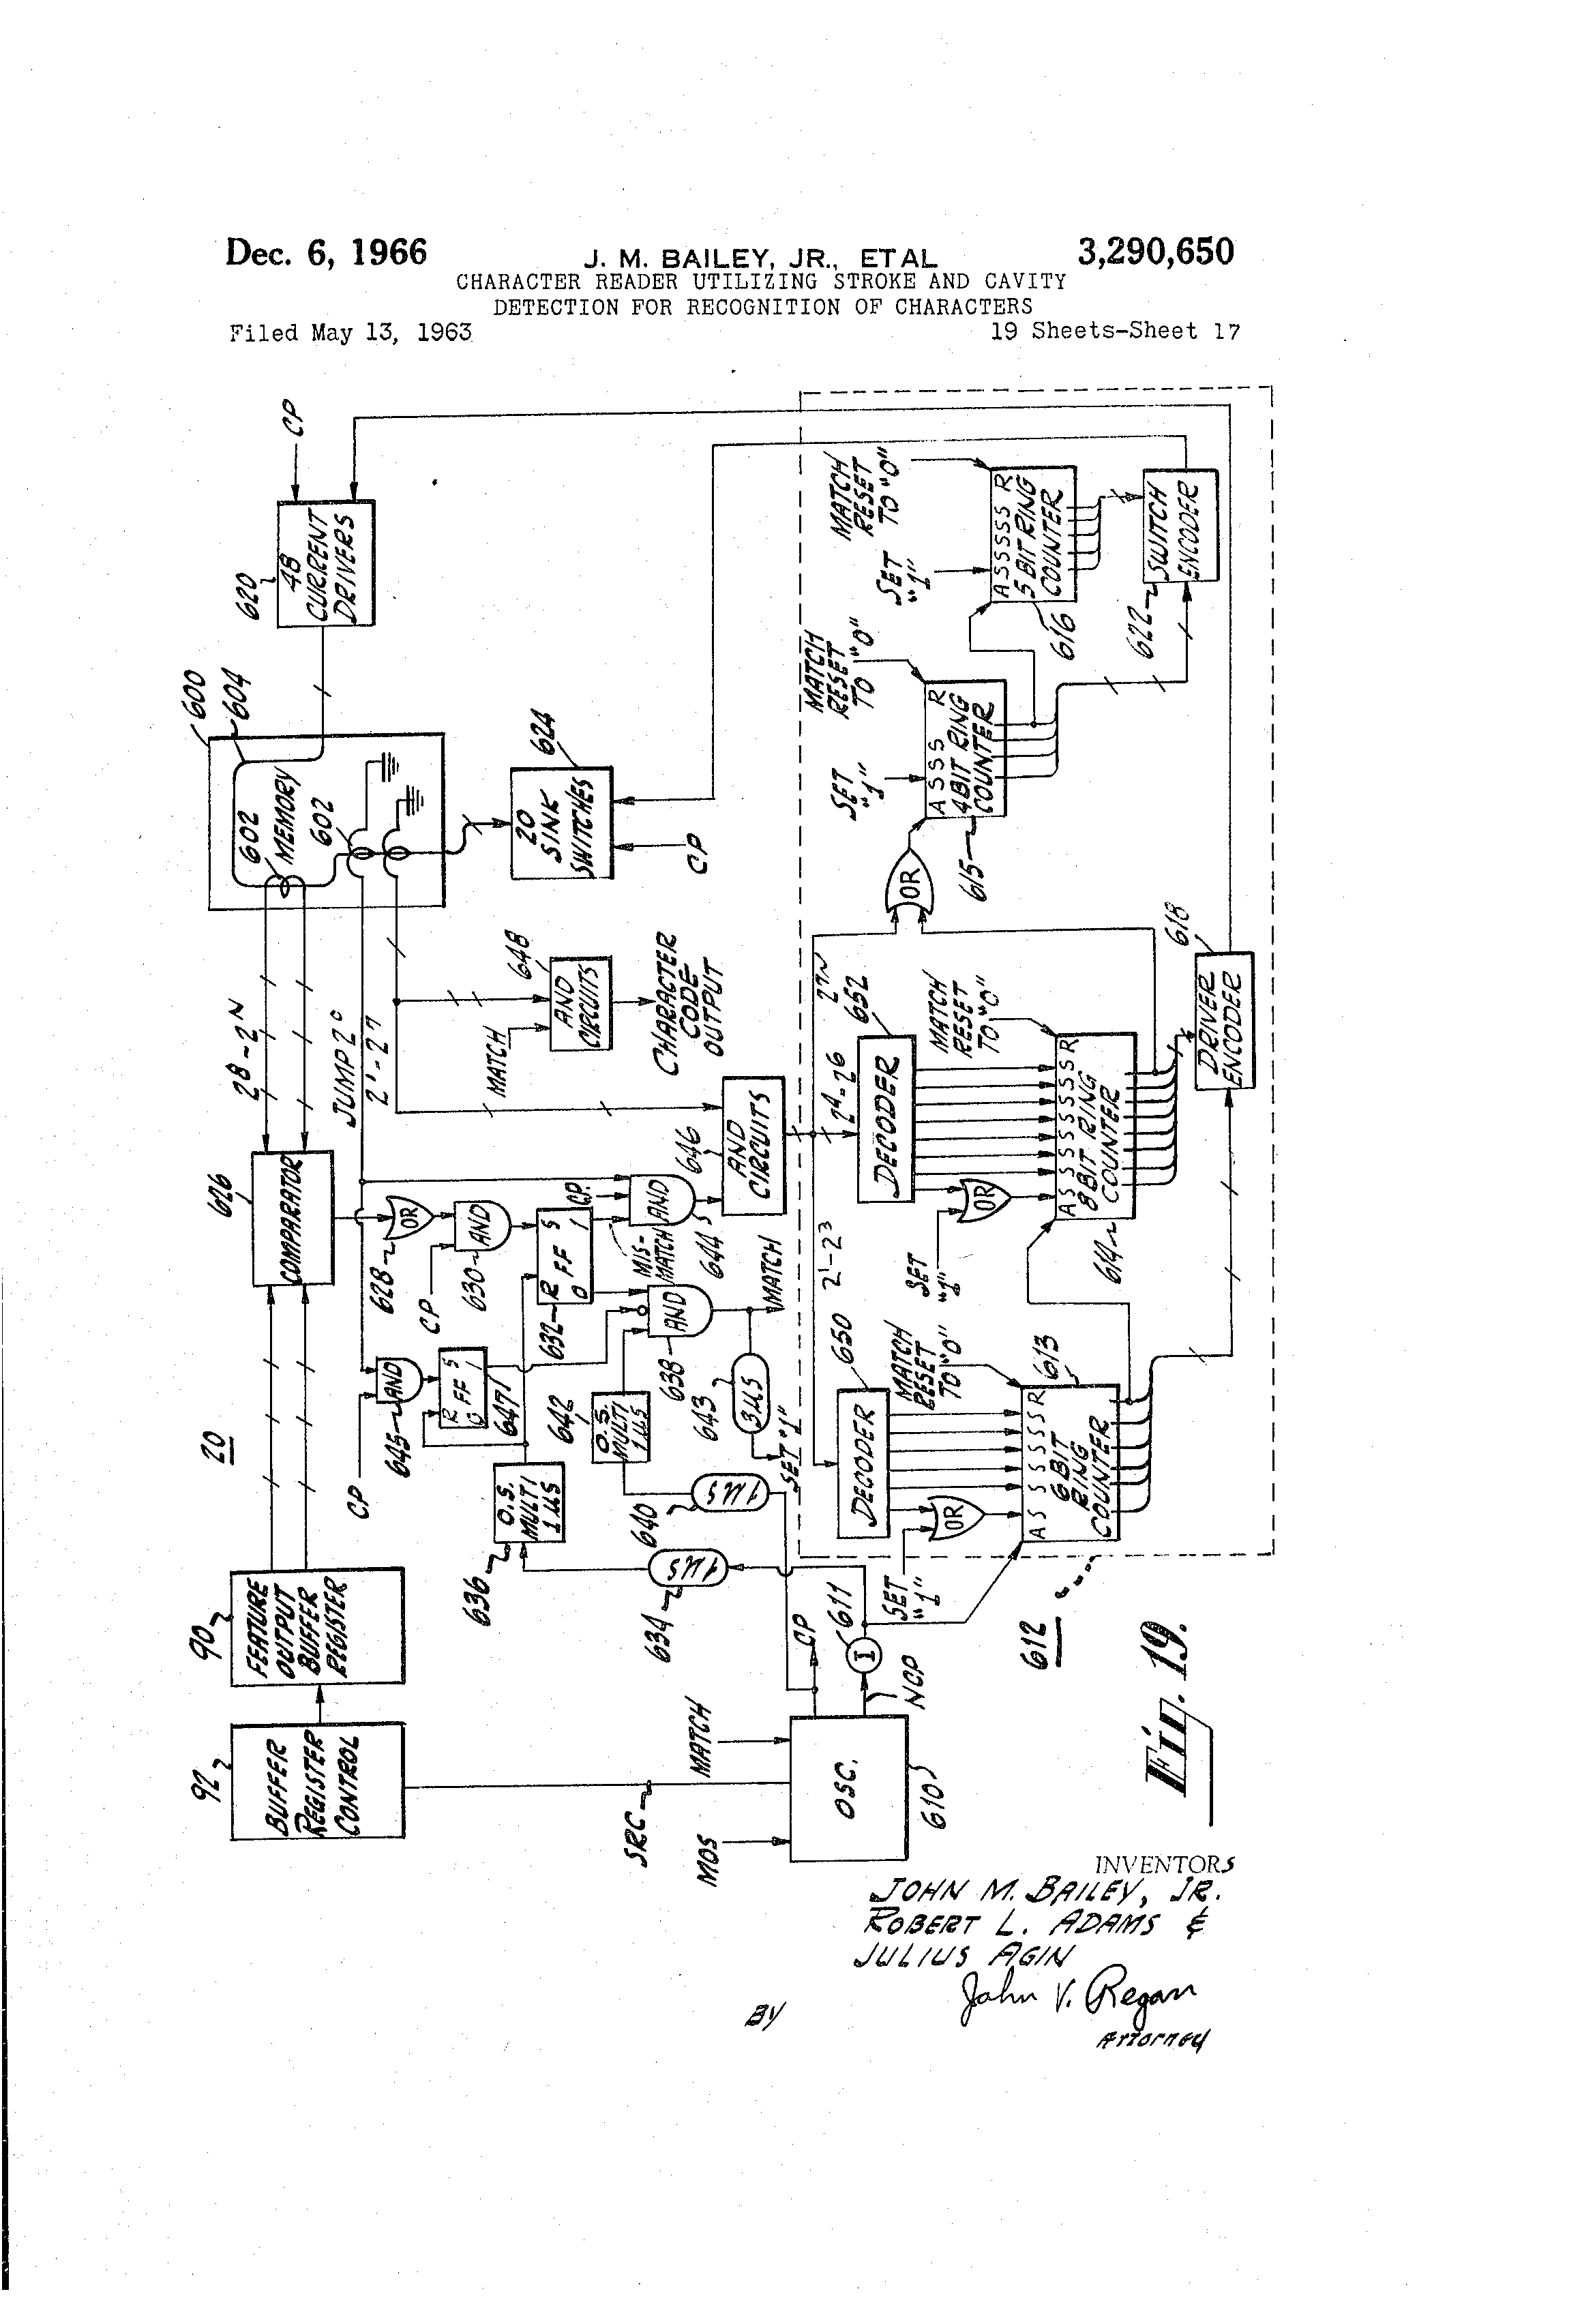 US3290650 16 patent us3290650 character reader utilizing stroke and cavity Basic Electrical Wiring Diagrams at gsmx.co